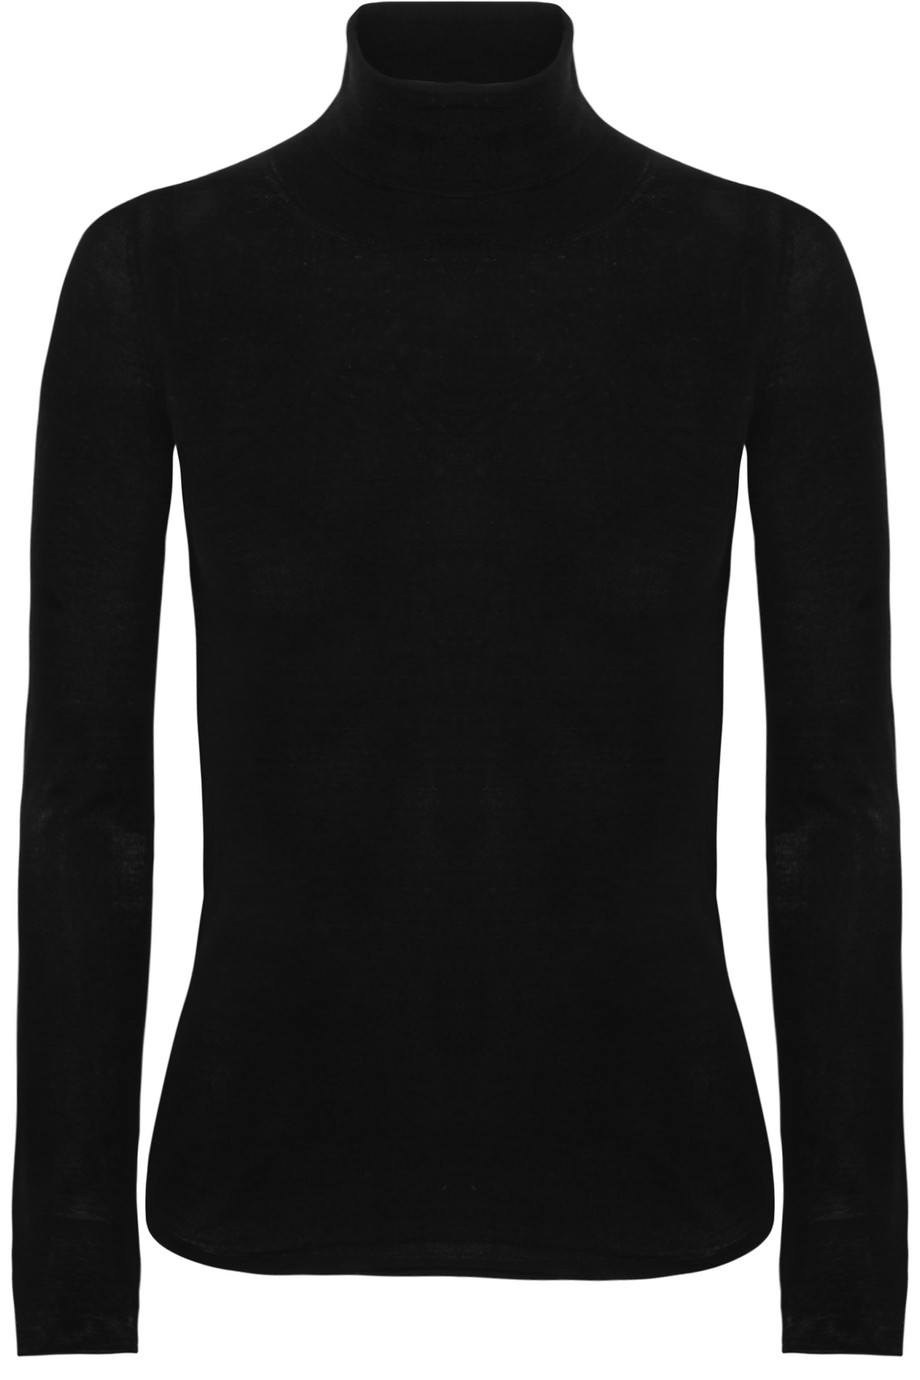 Joseph Merino Wool Turtleneck Sweater, Black, Women's